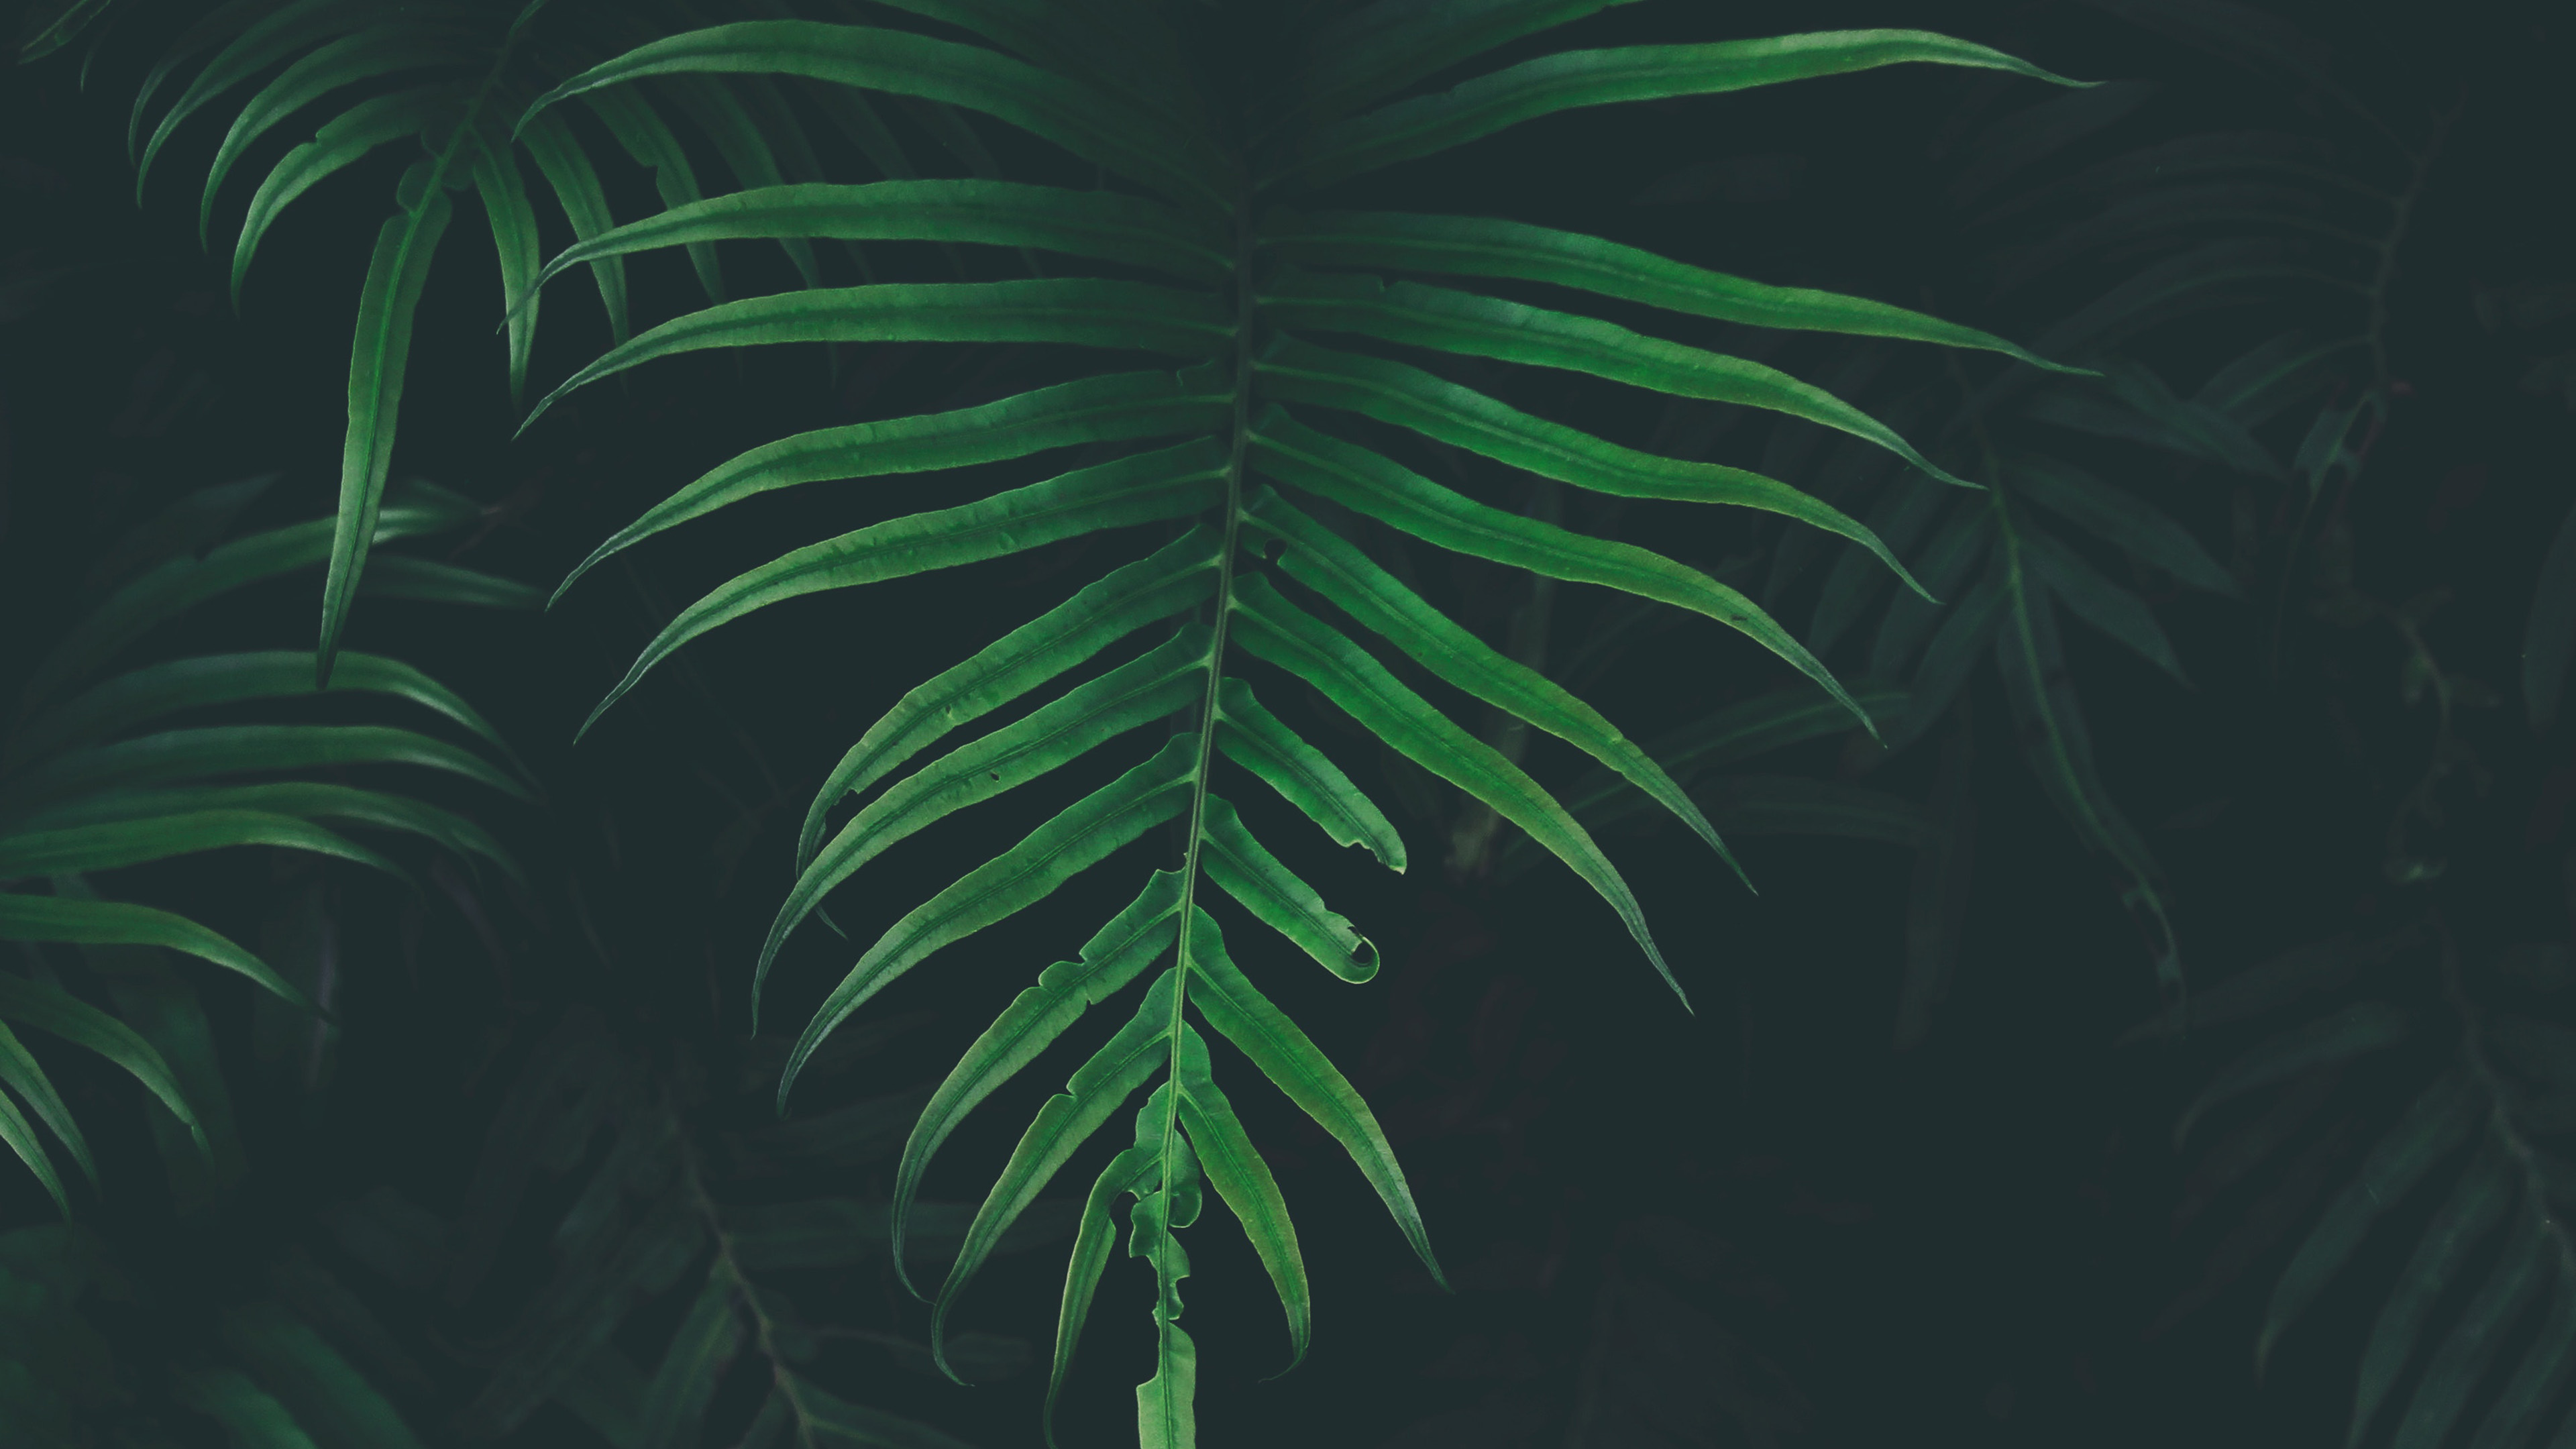 But setting any old live photo isn't going to give you great results: nw44-leaf-tree-dark-nature-wallpaper